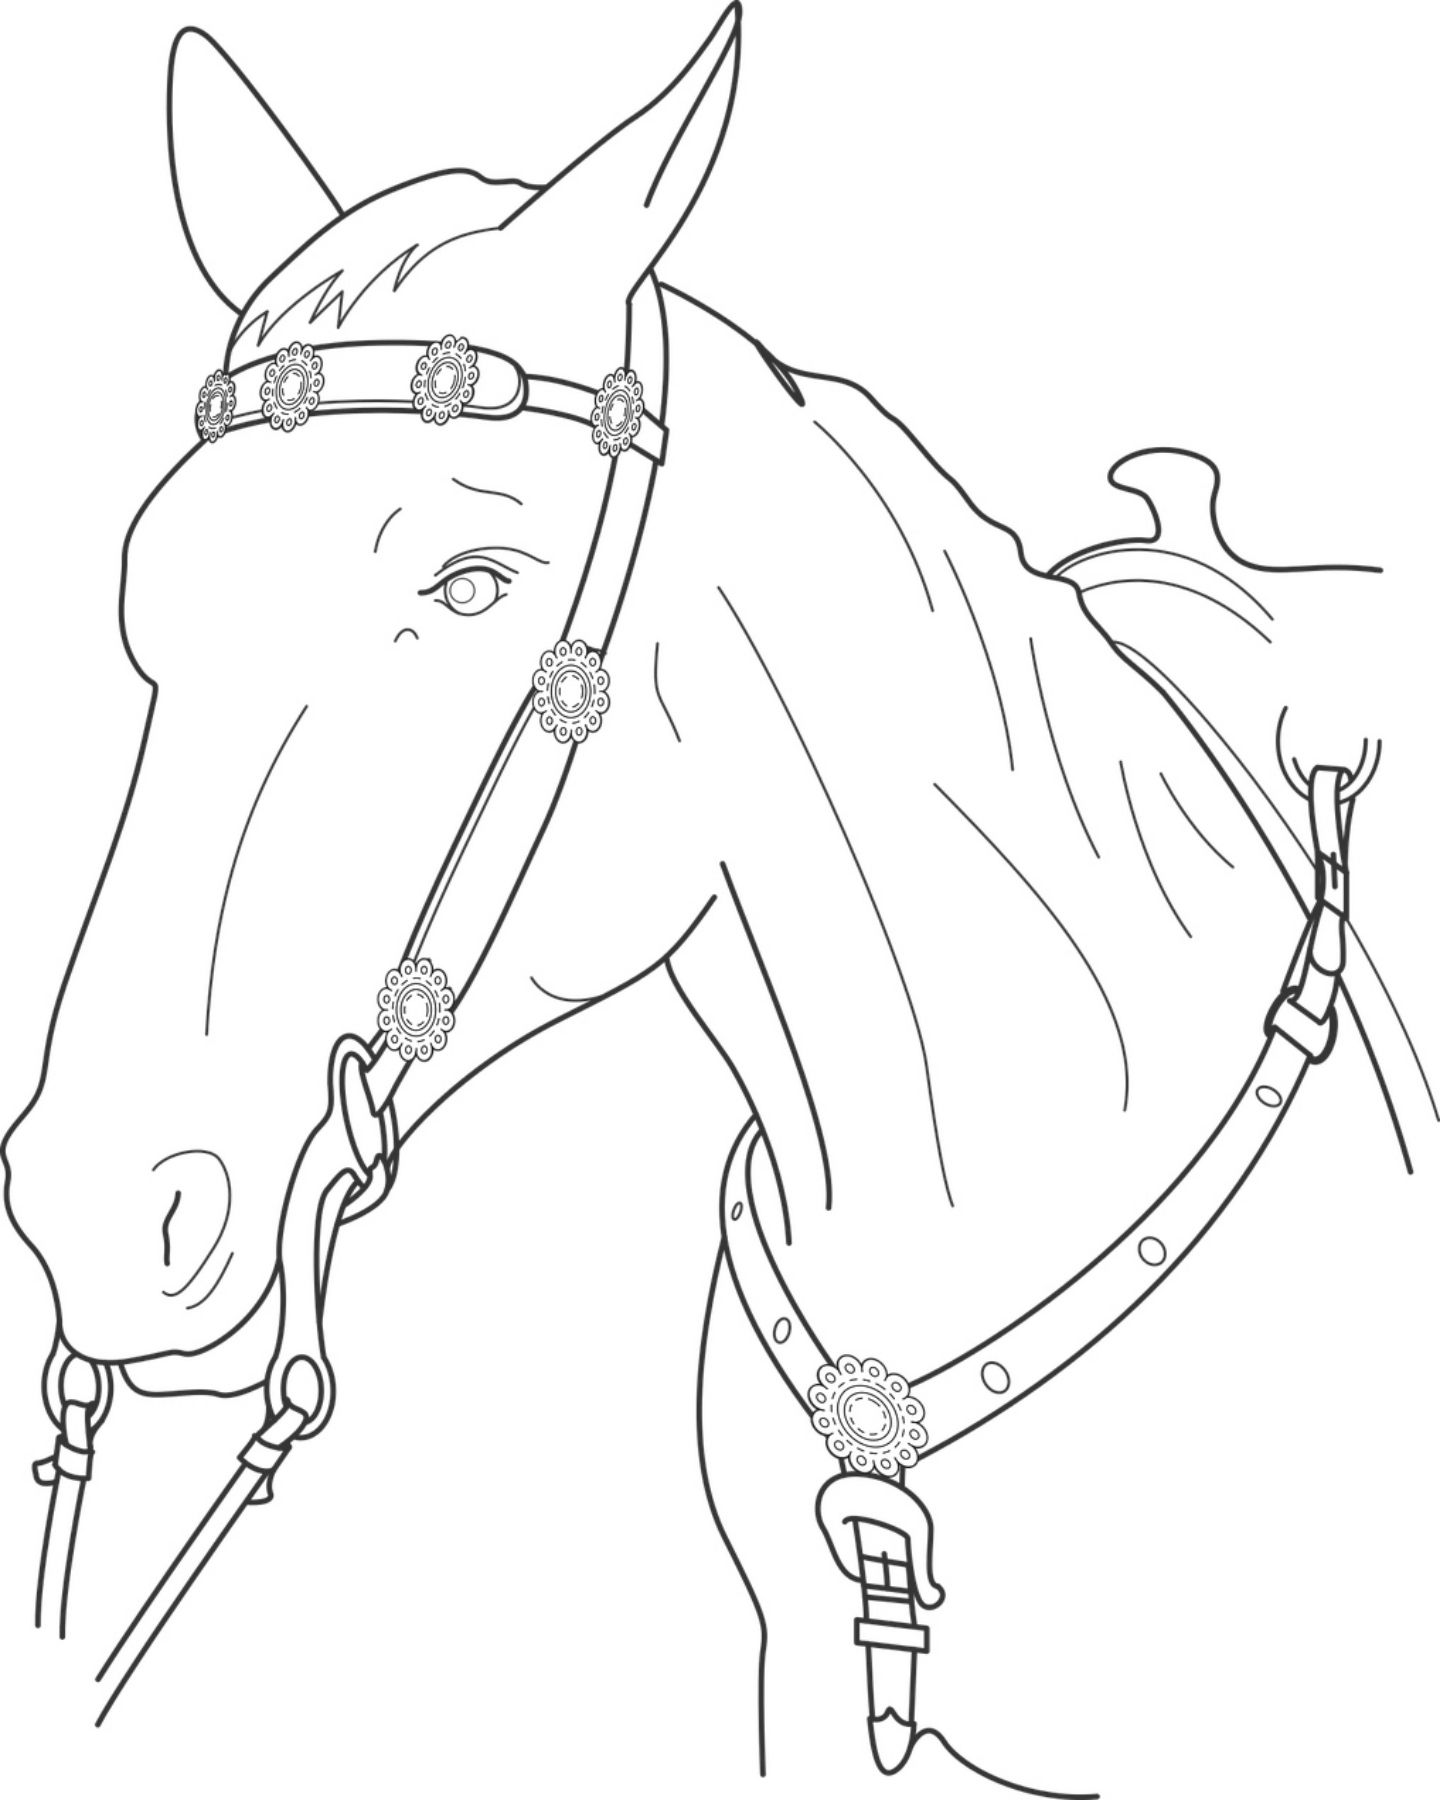 Free printable horse coloring page adult coloring pinterest